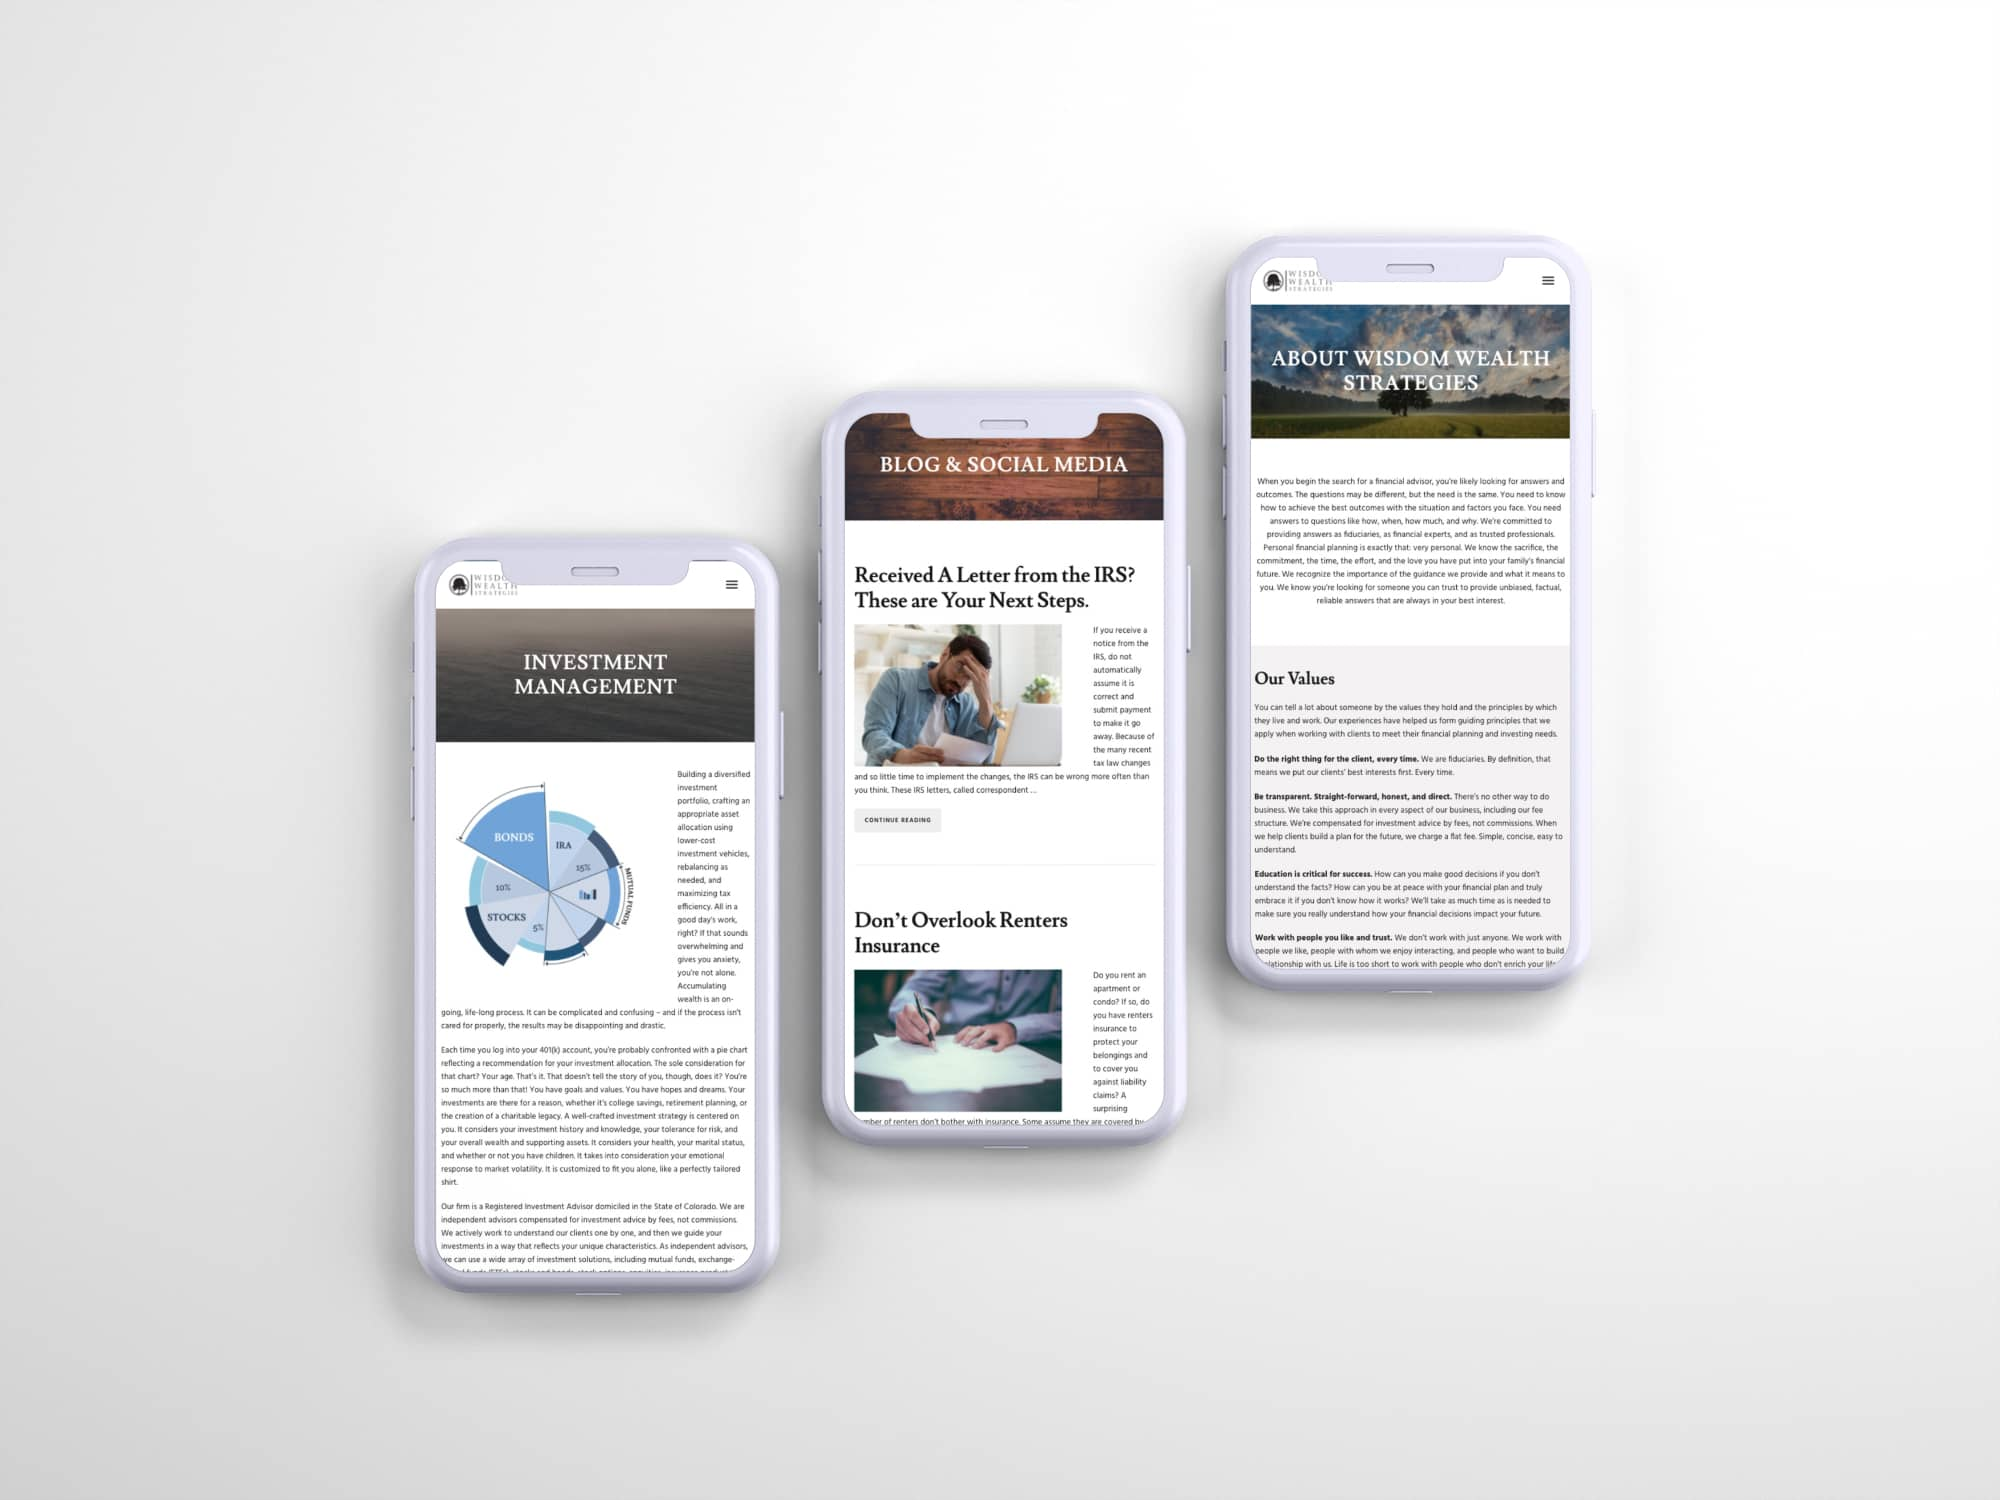 Wisdom Wealth Strategies Website on mobile devices